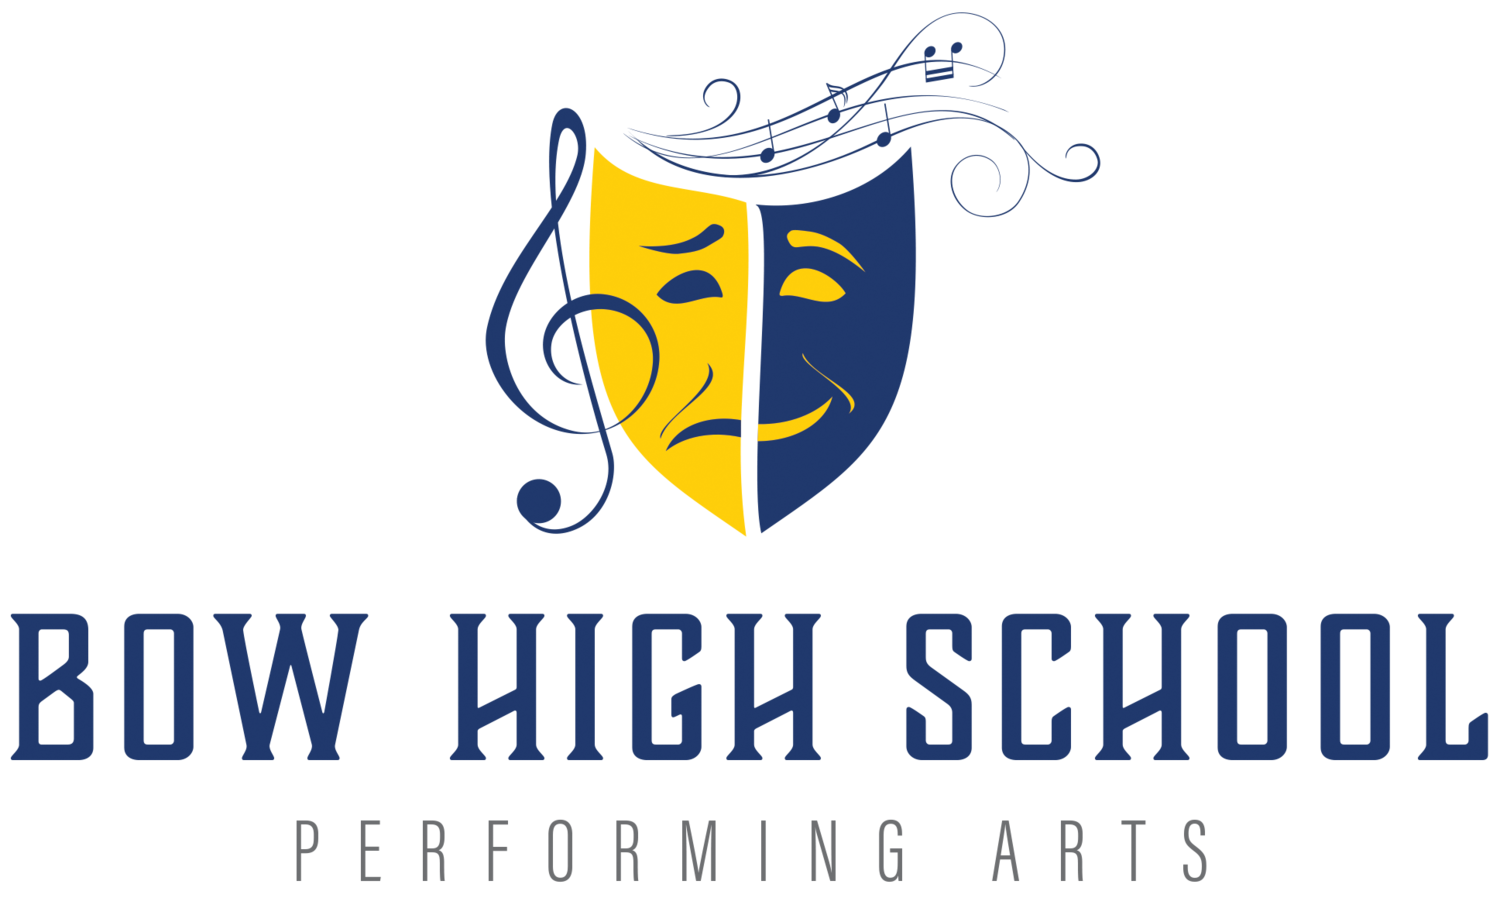 Bow High School Performing Arts